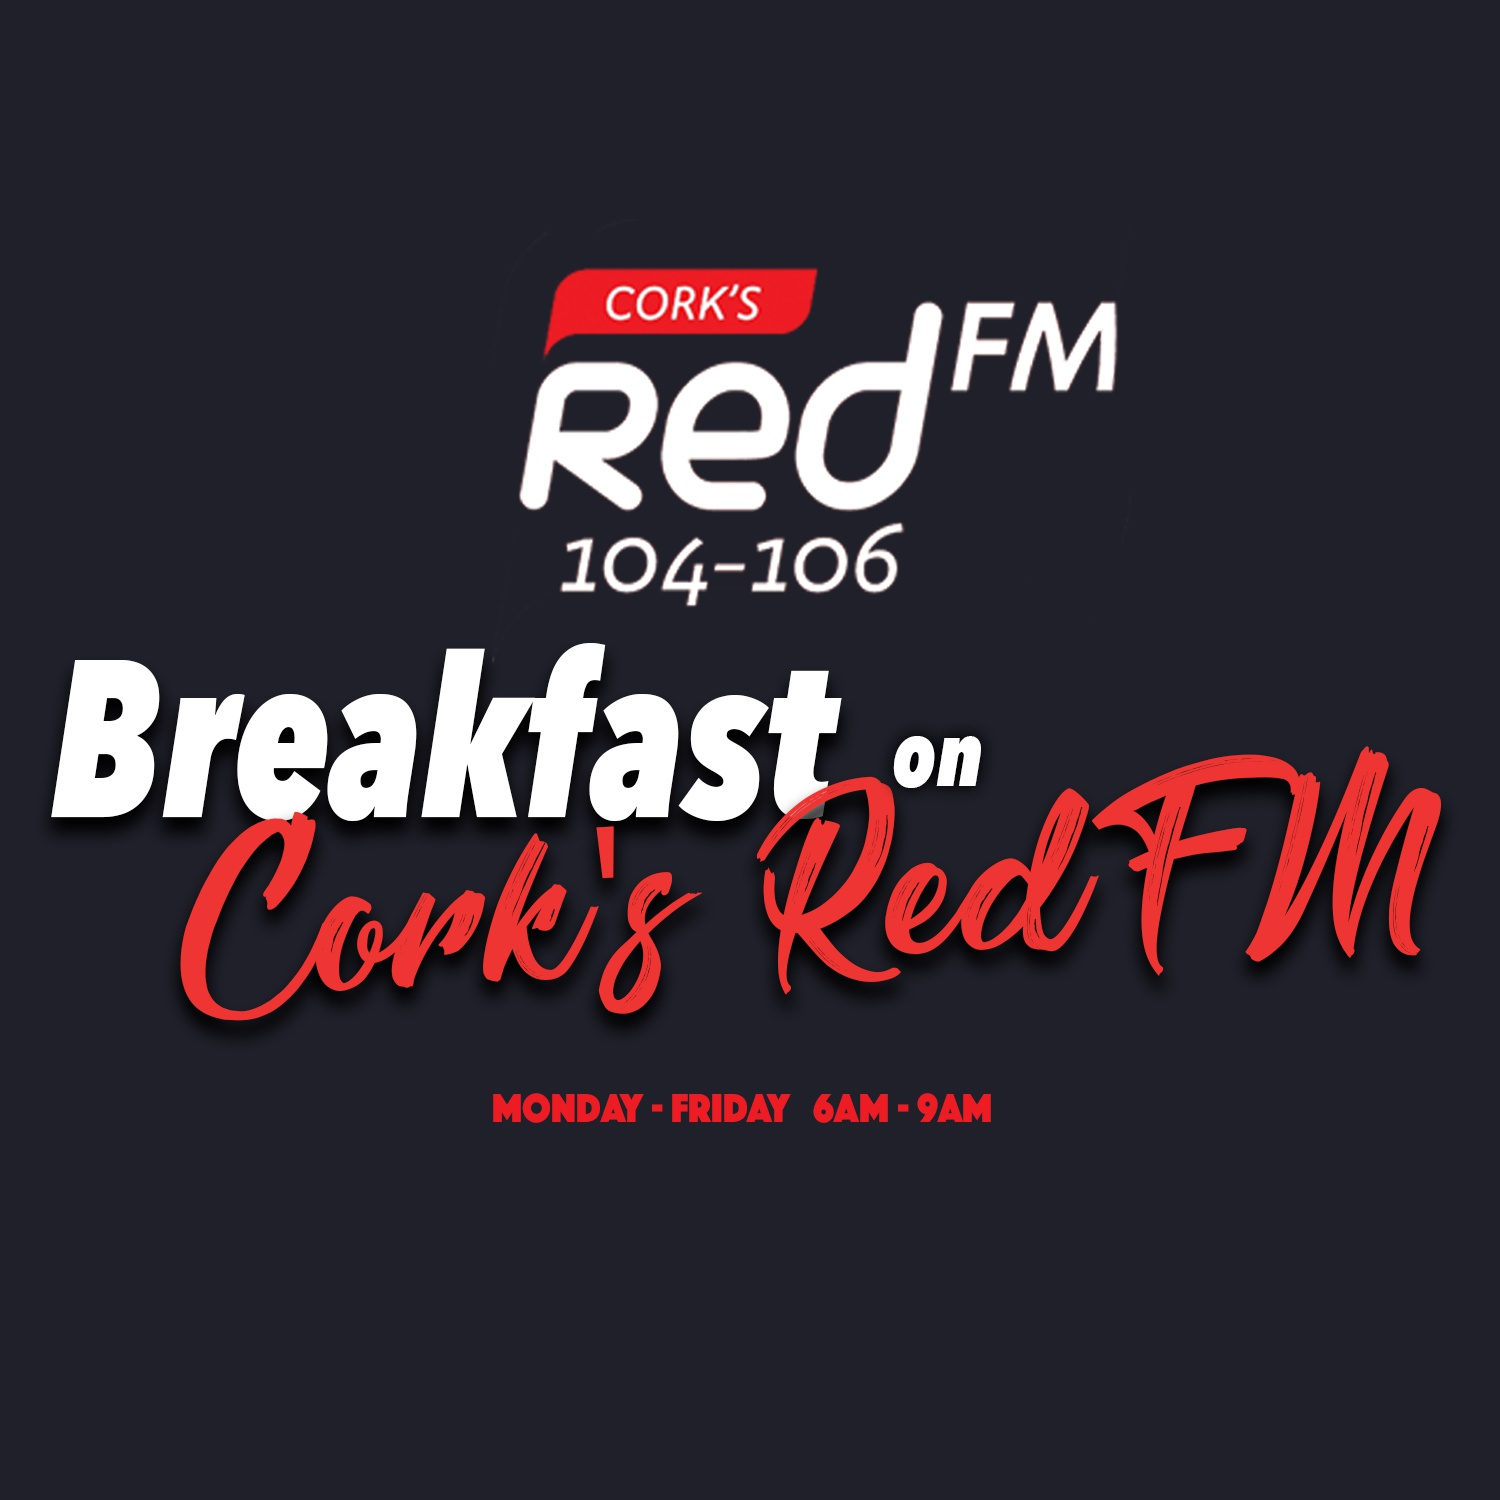 Breakfast on Cork's RedFM